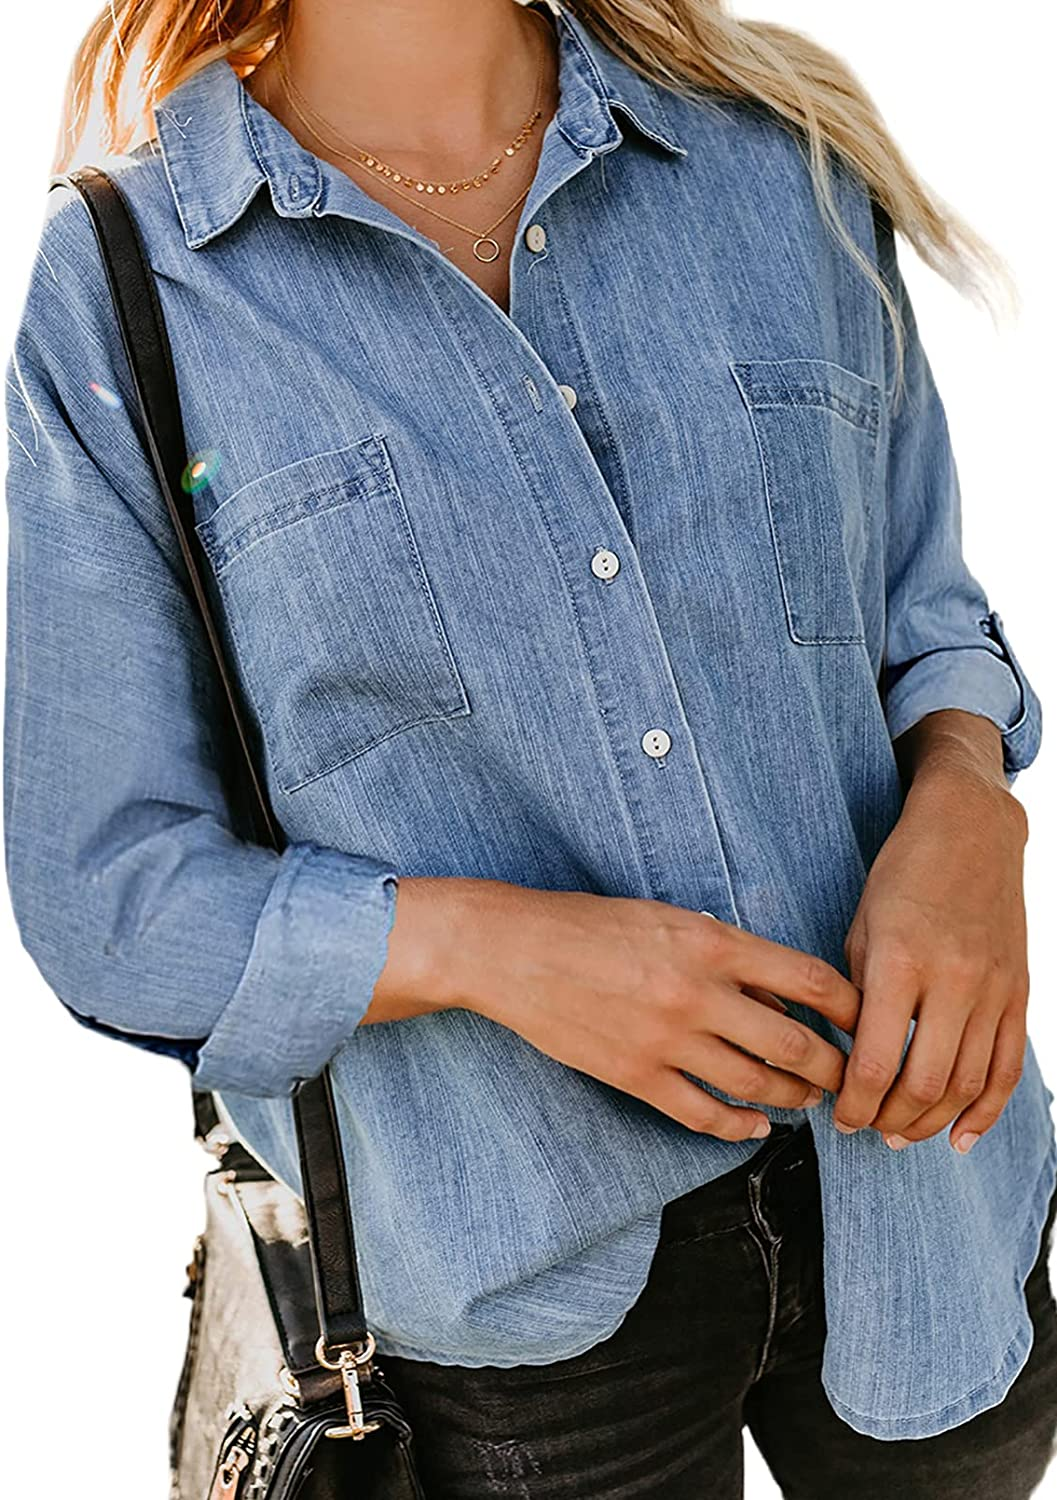 Dokotoo Blouses for Women Casual V Neck Short Sleeve Womens Denim Tops and Blouse